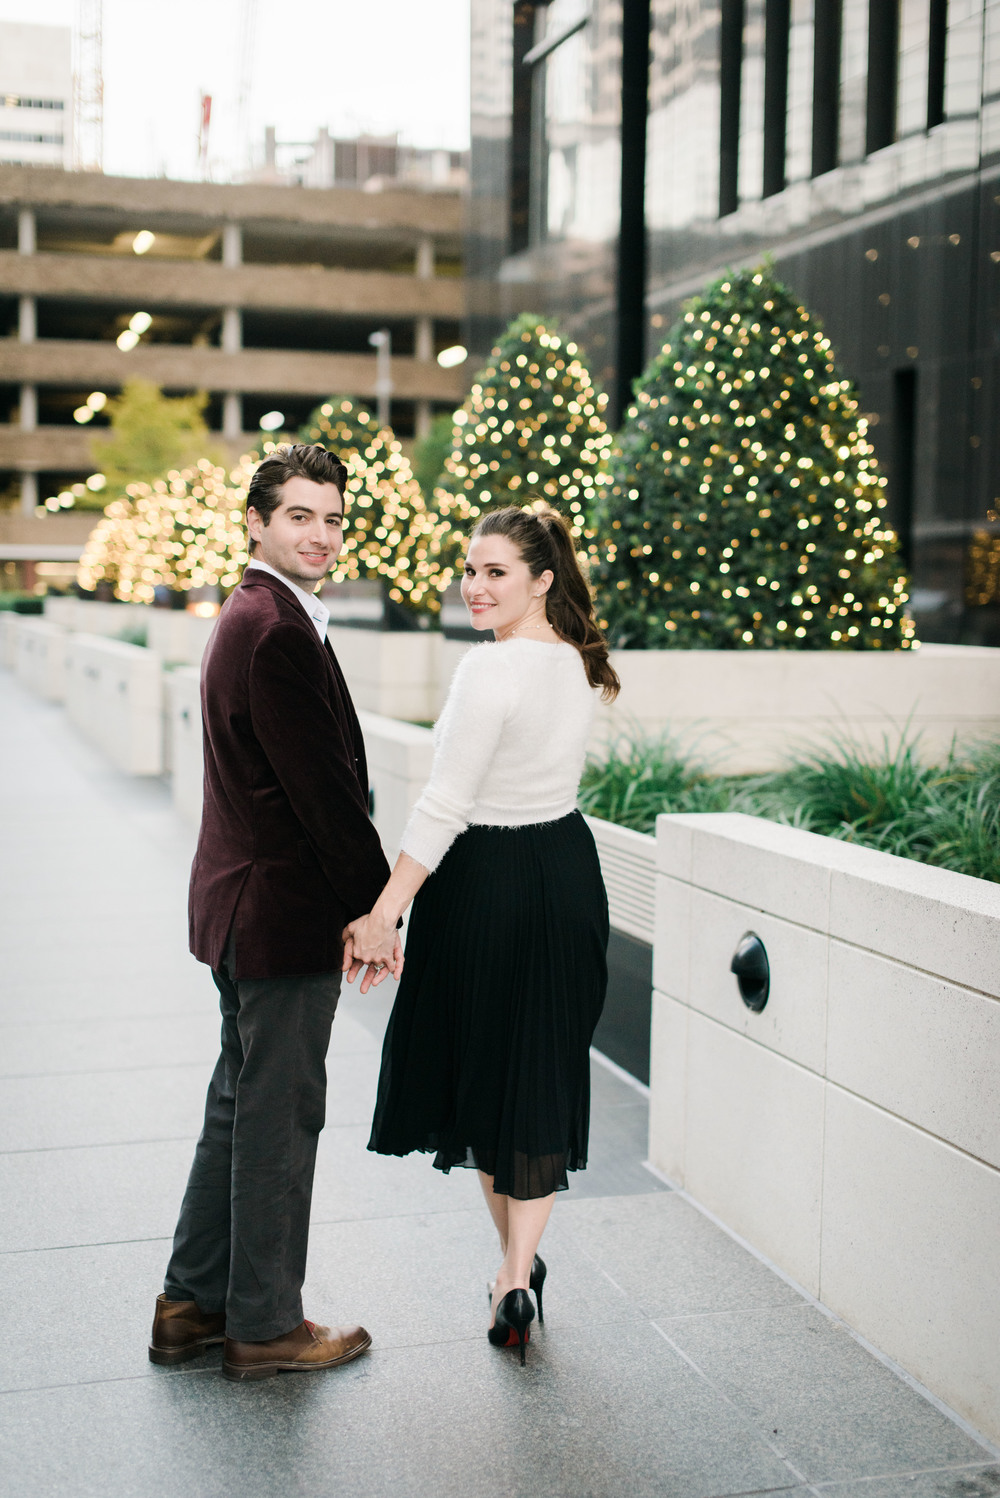 houston wedding photographer dana fernandez photography-8.jpg